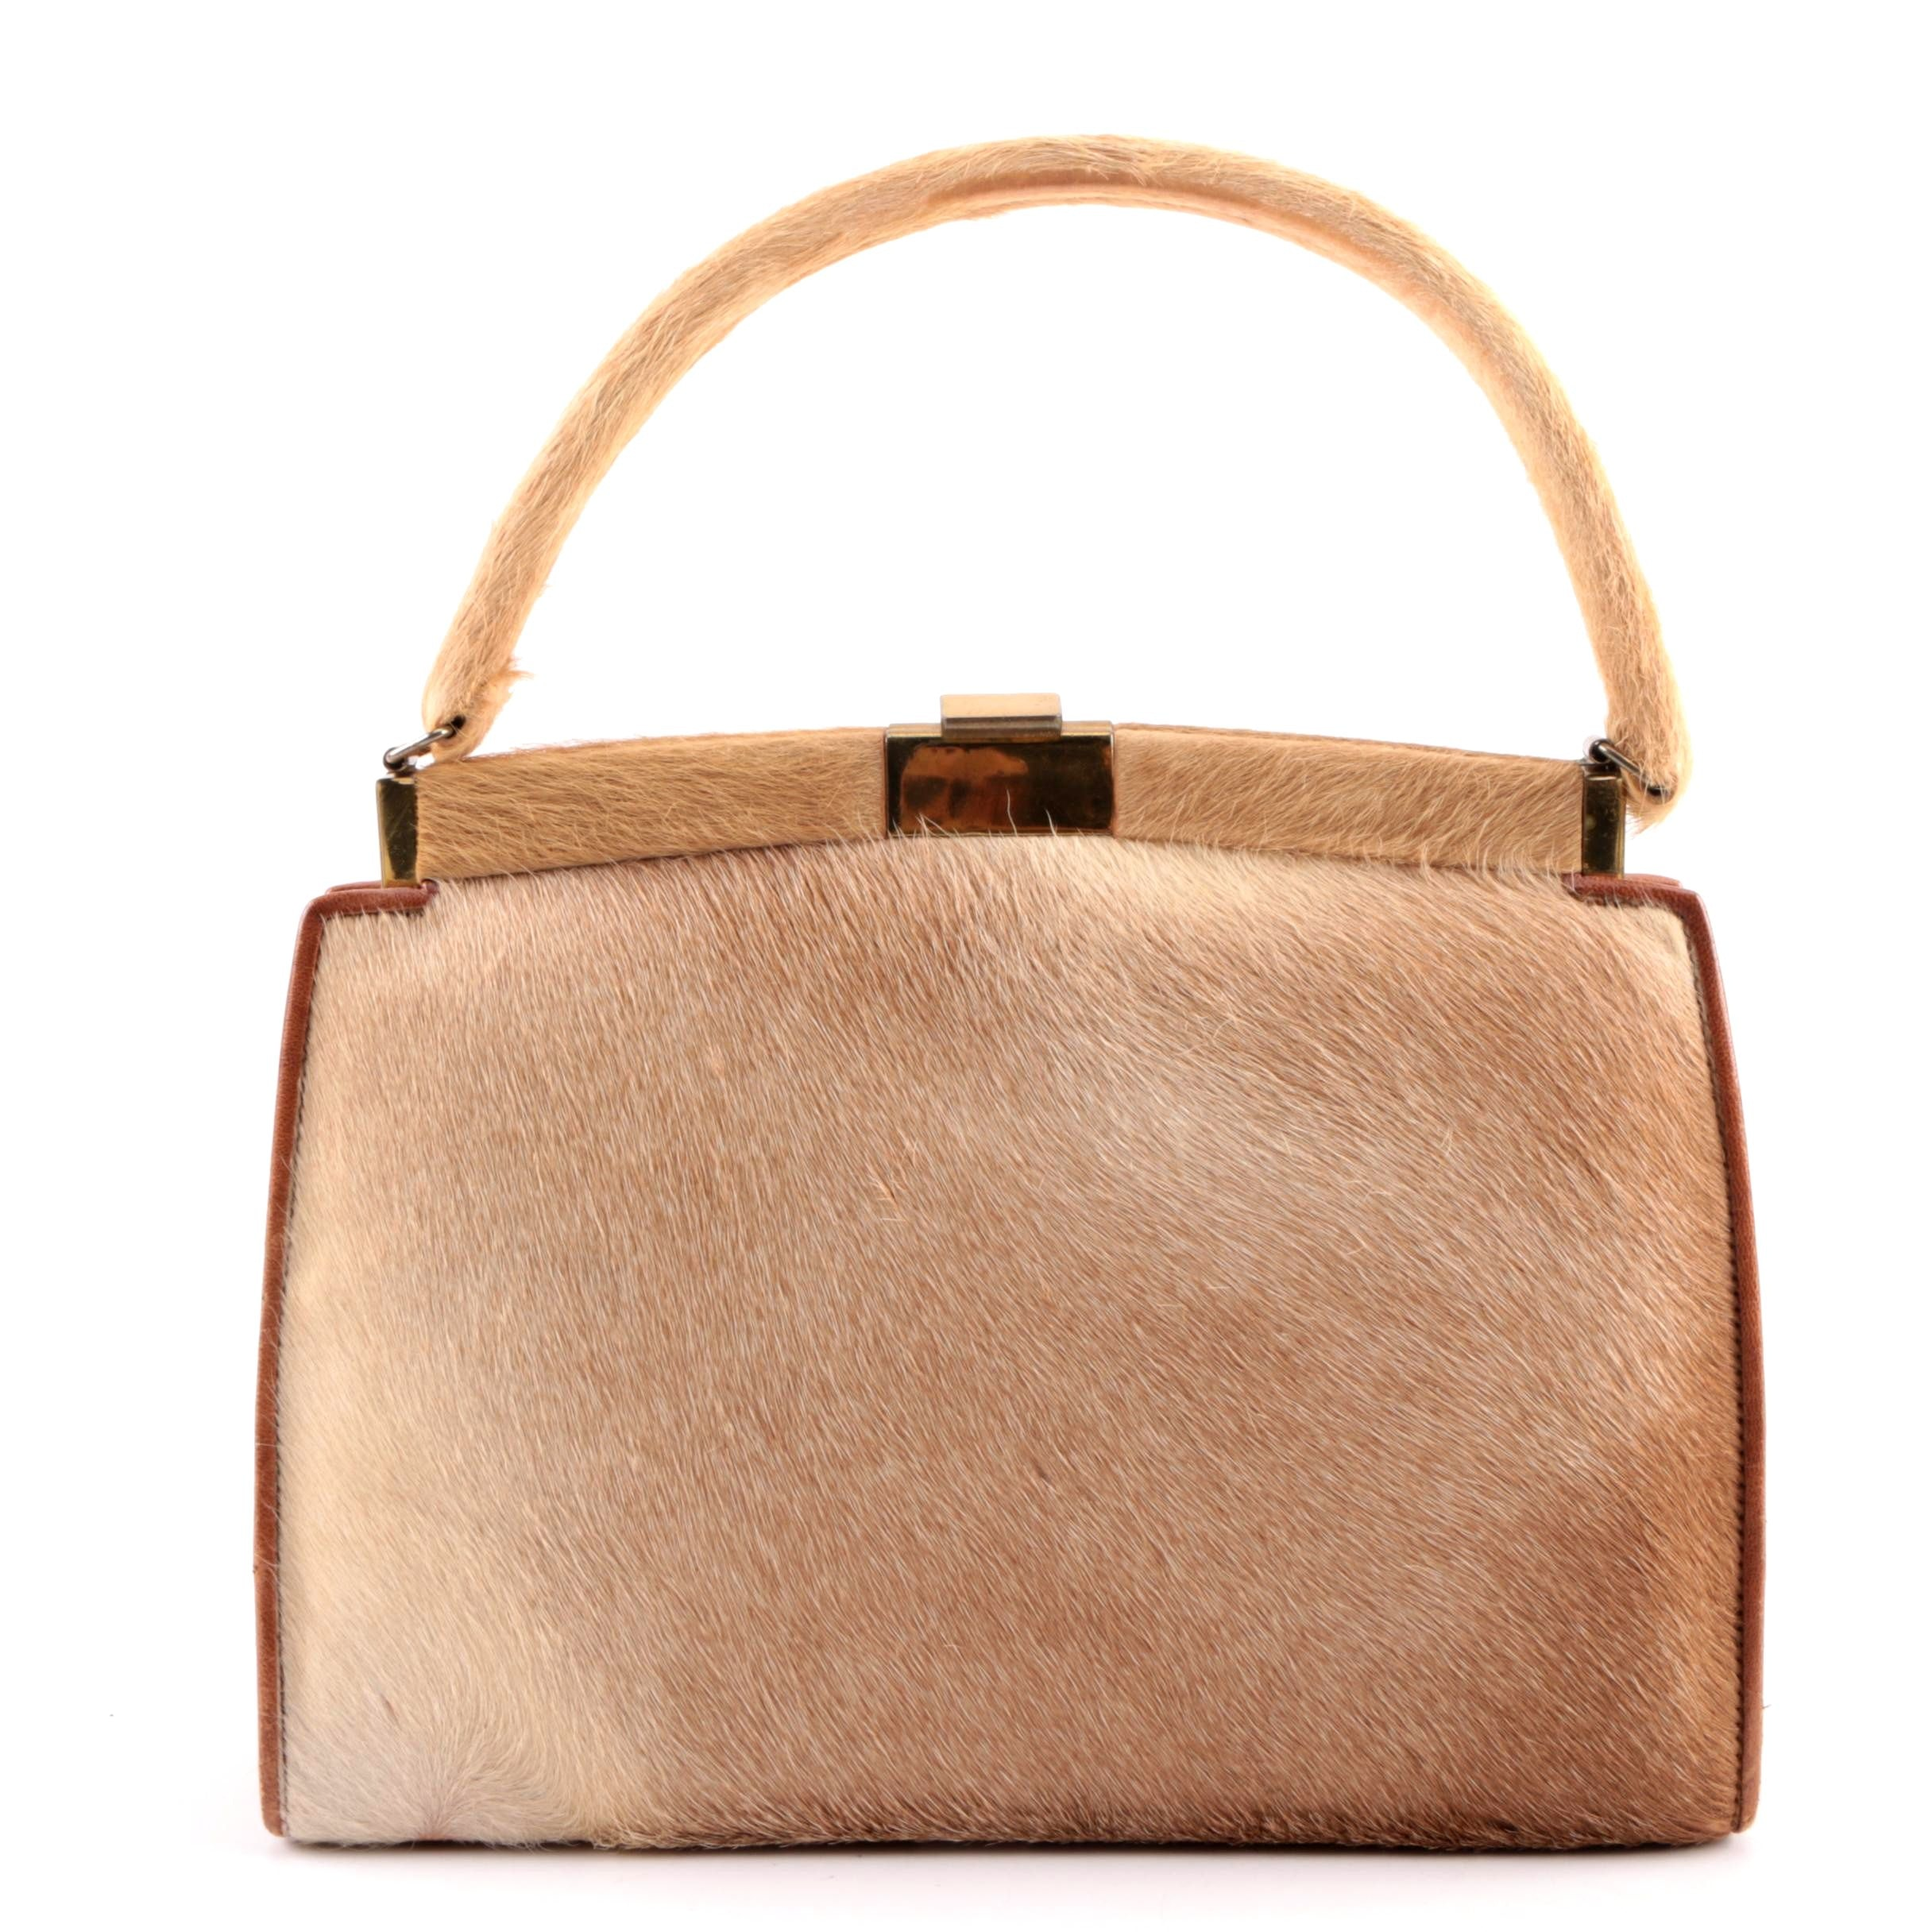 1960s Vintage Cow Hide Handbag